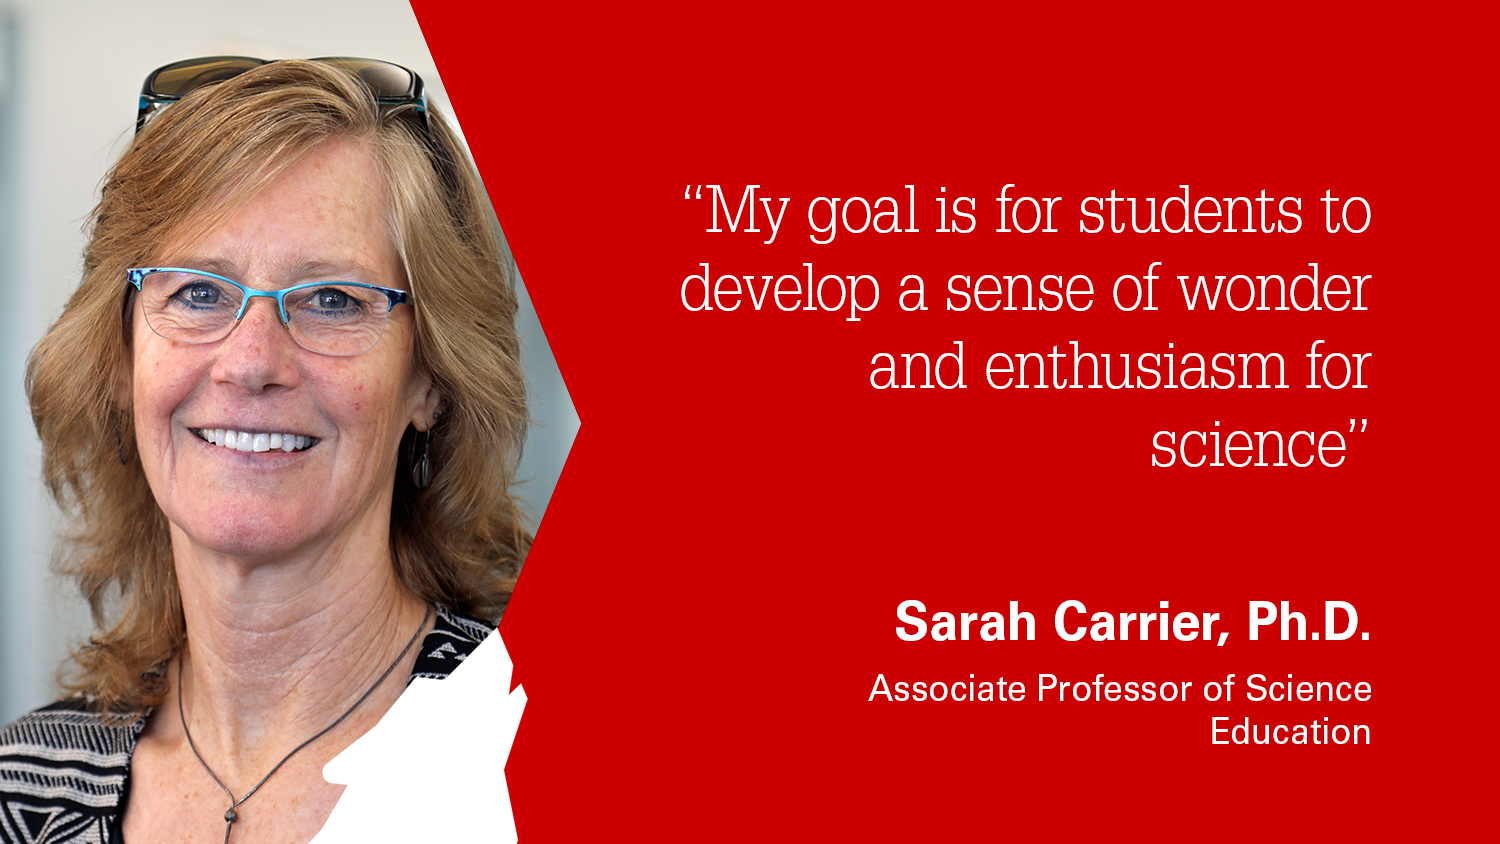 NC State College of Education Associate Professor Sarah Carrier Ph.D.